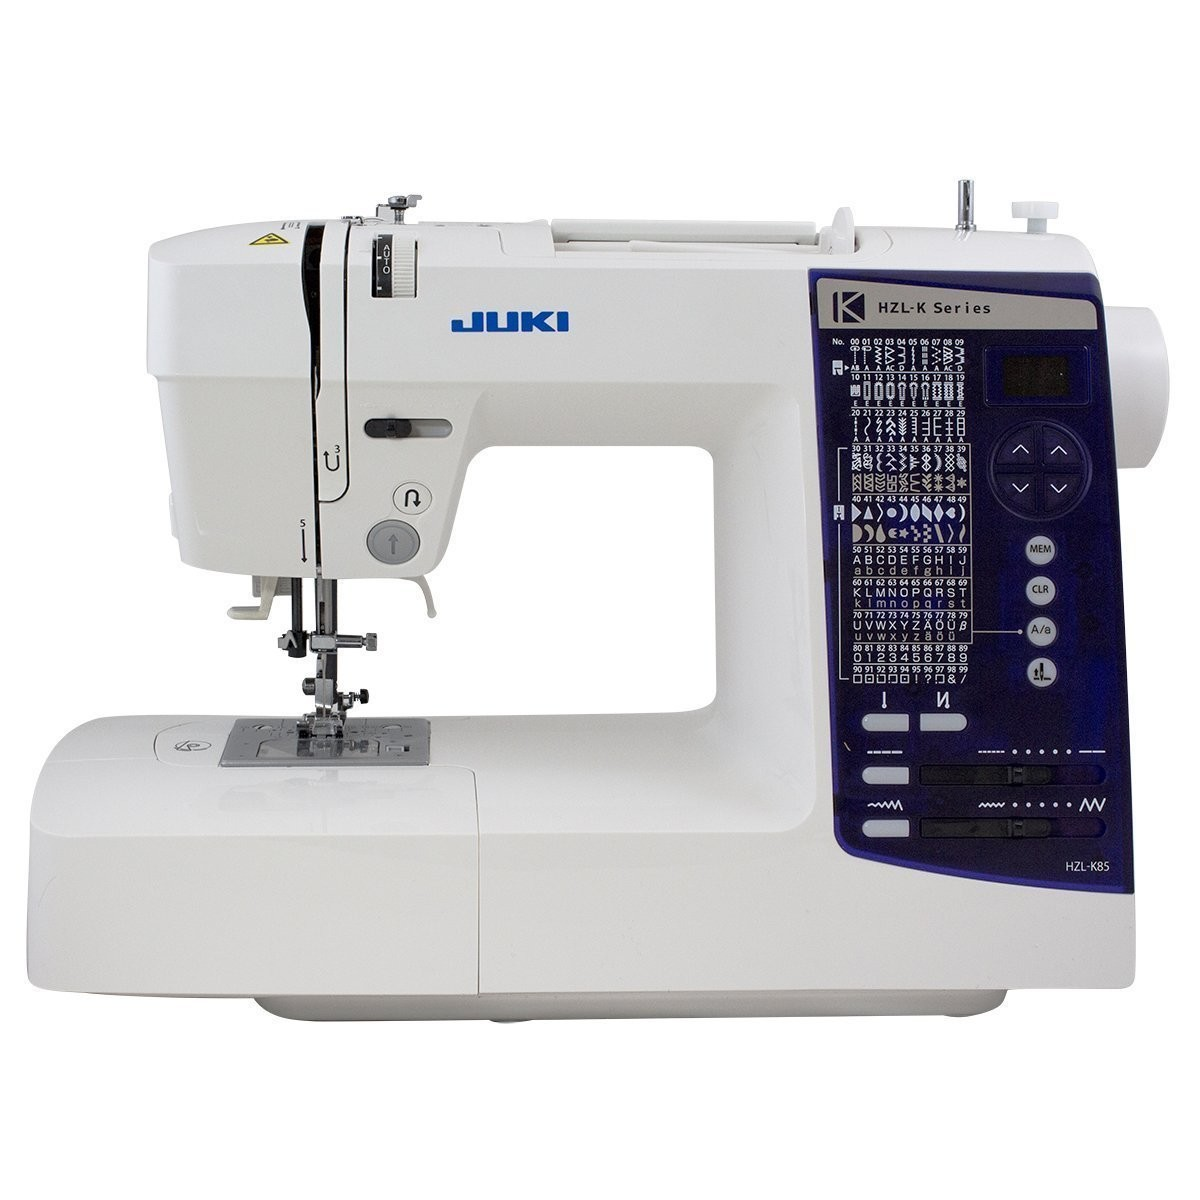 Juki HZL-K85 Computer-Controlled Household Sewing Machine $399.00 & FREE Shipping